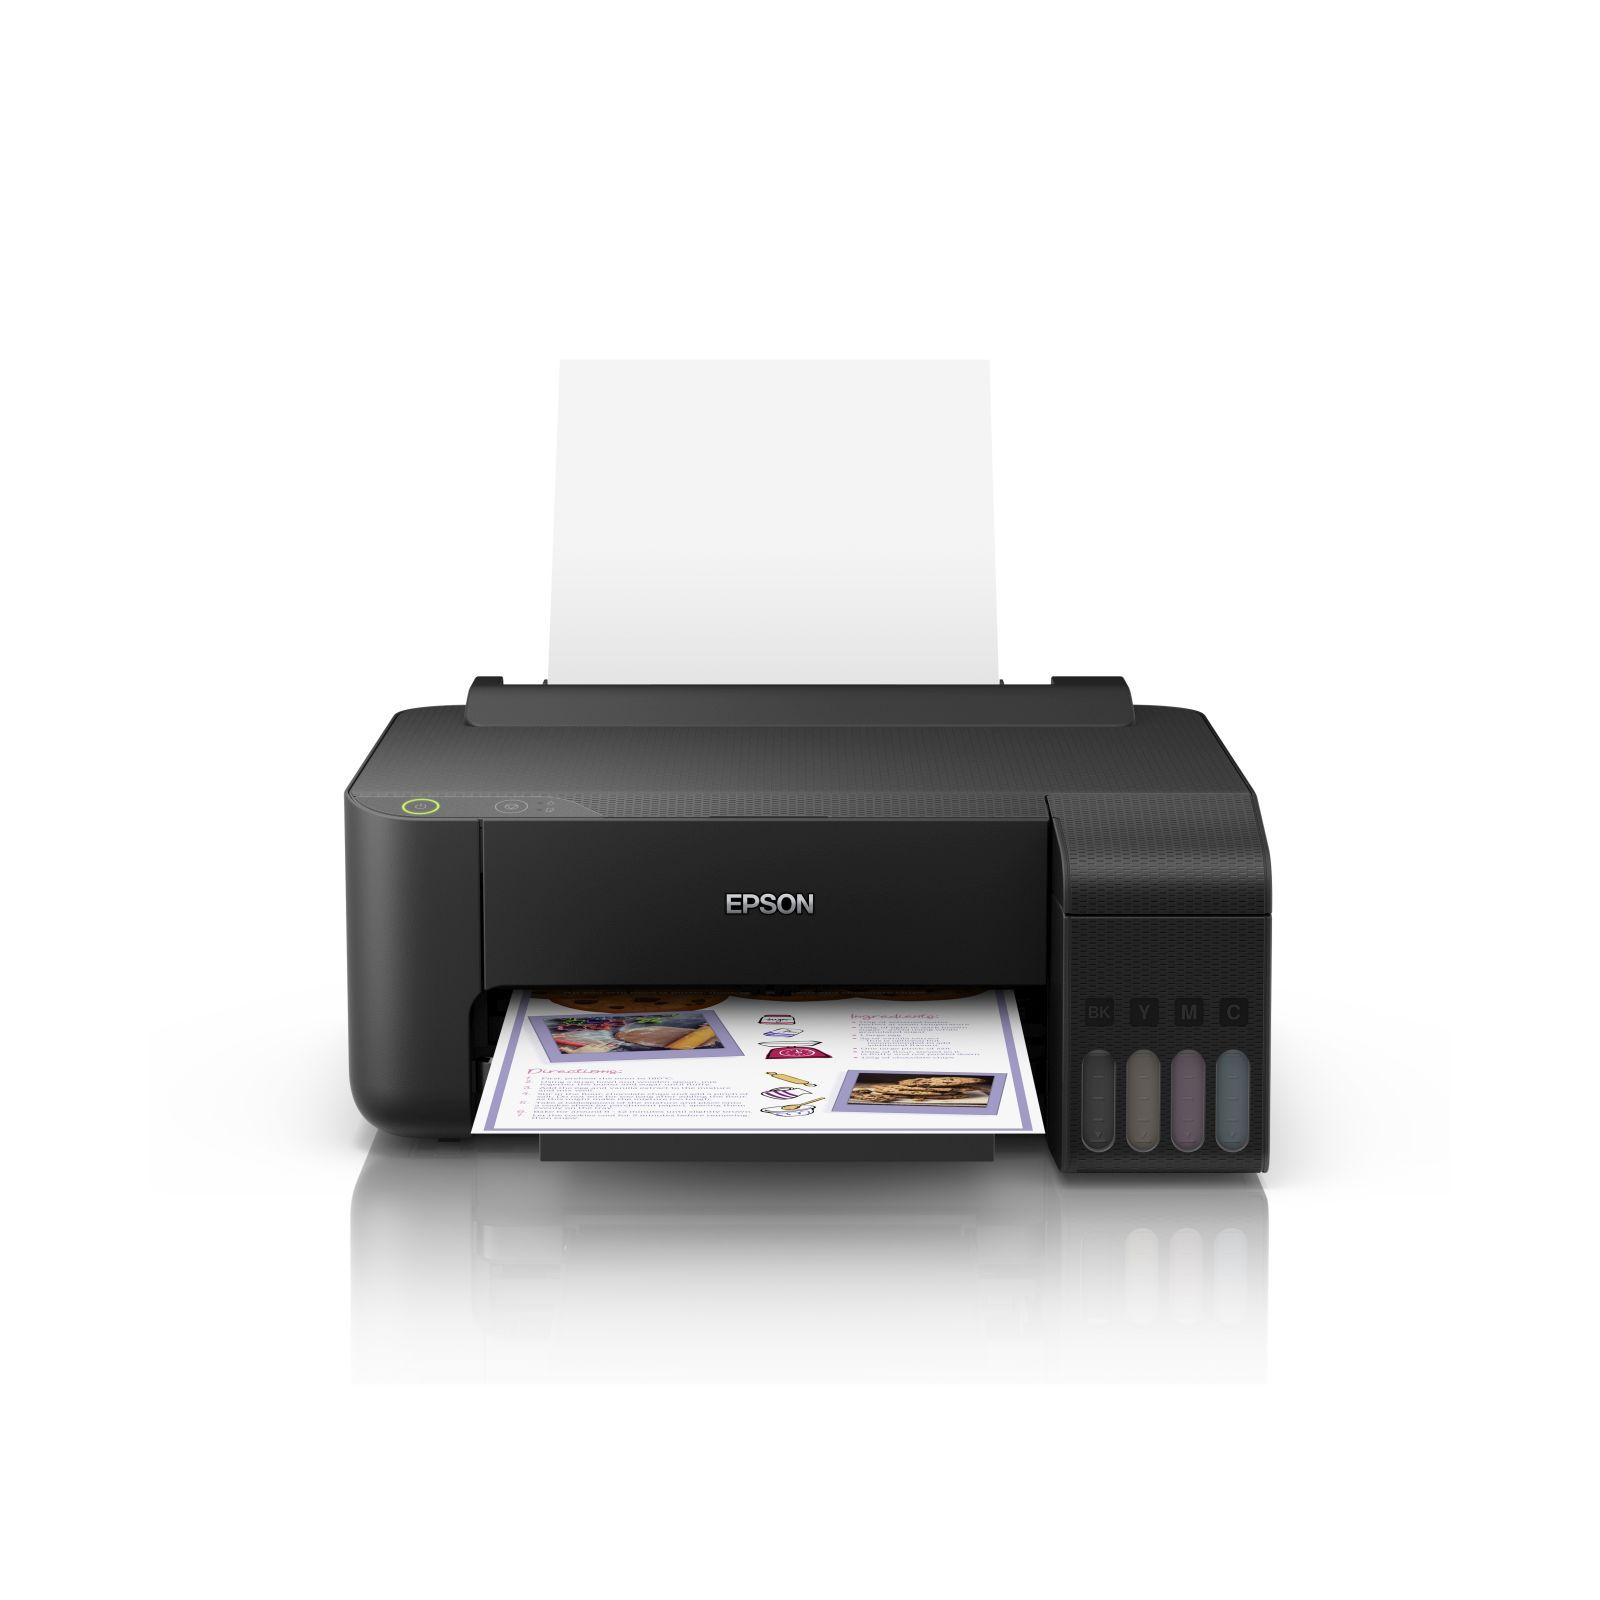 Step-by-step Driver Epson Printer L1110 CentOS Installation -  Featured